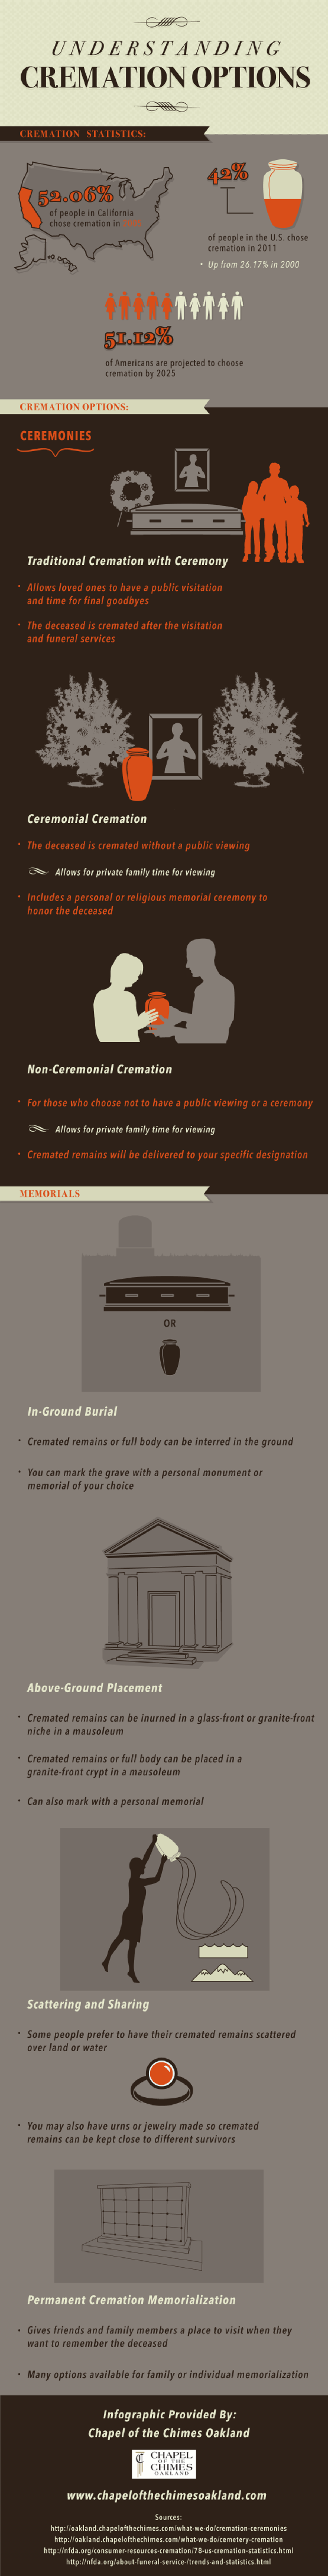 Understanding-Cremation-Options-Infographic